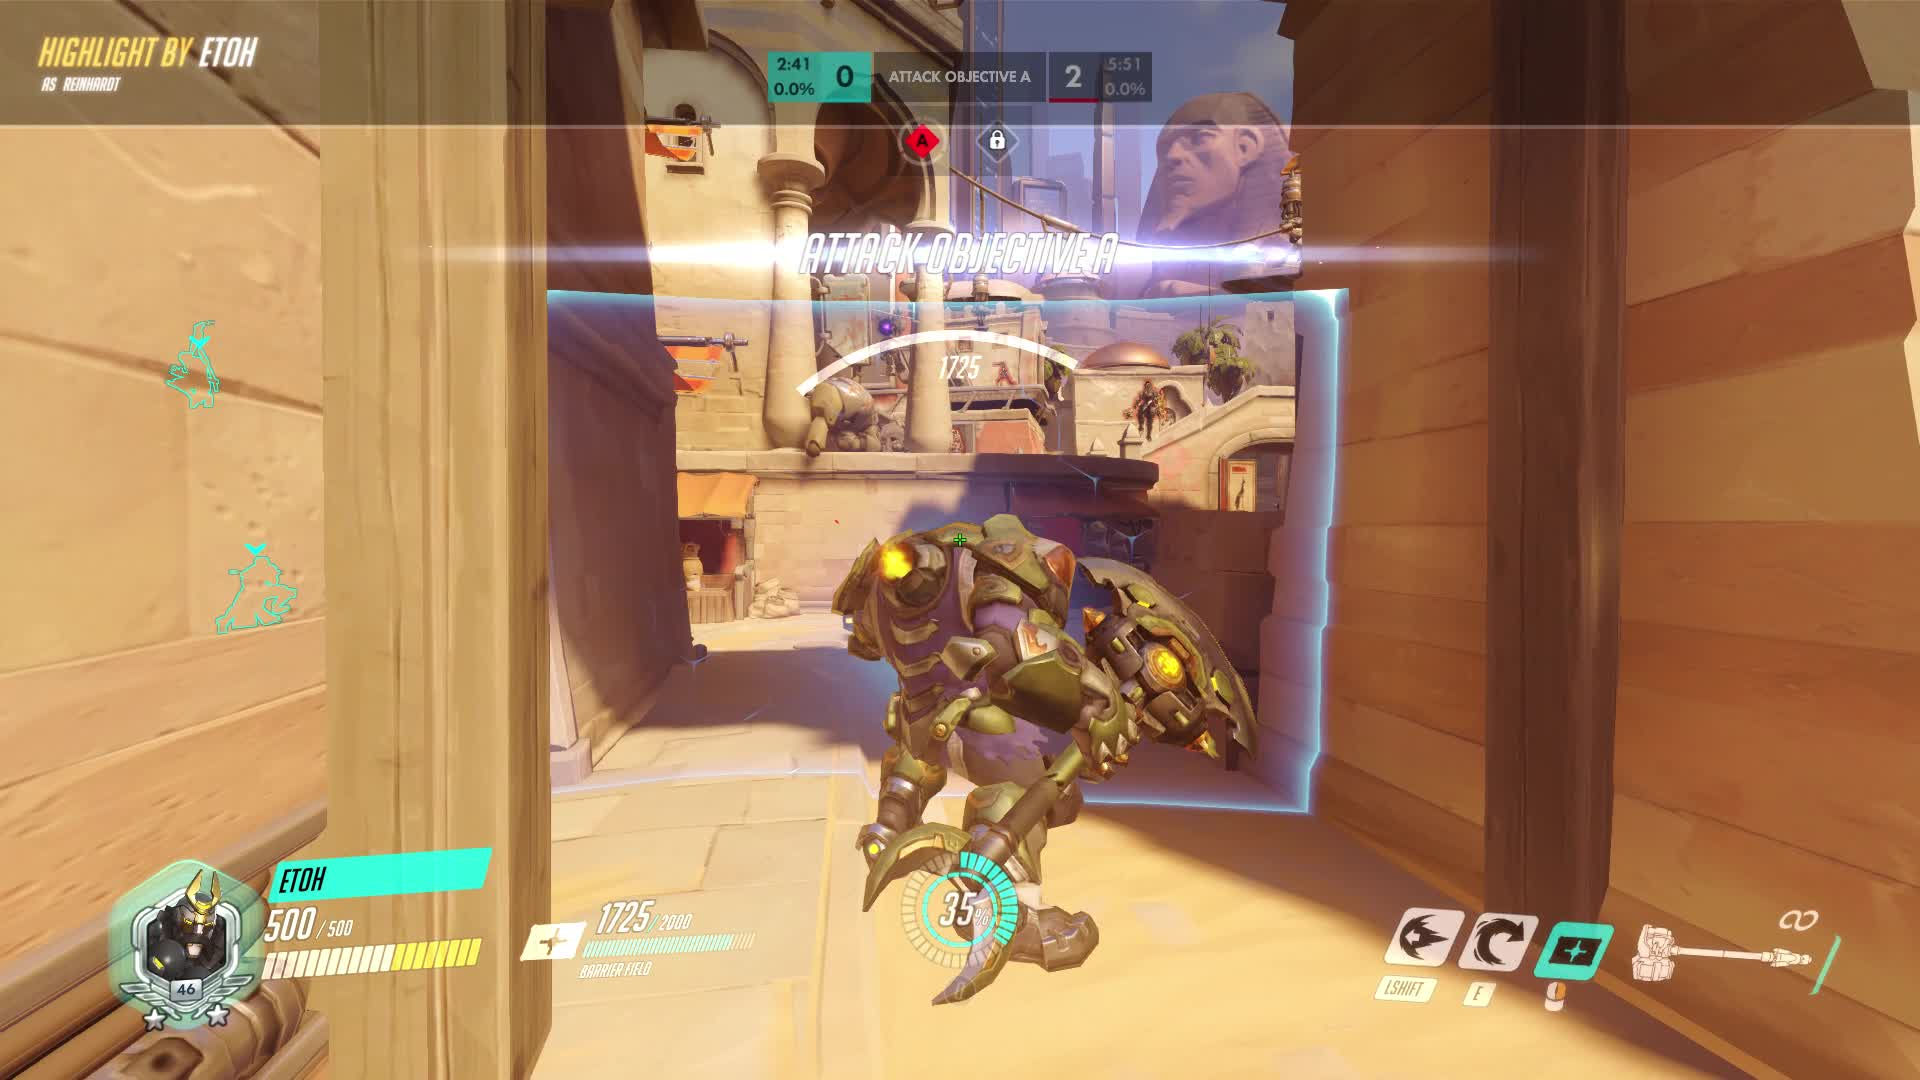 highlight, overwatch, end of season throwers :) GIFs